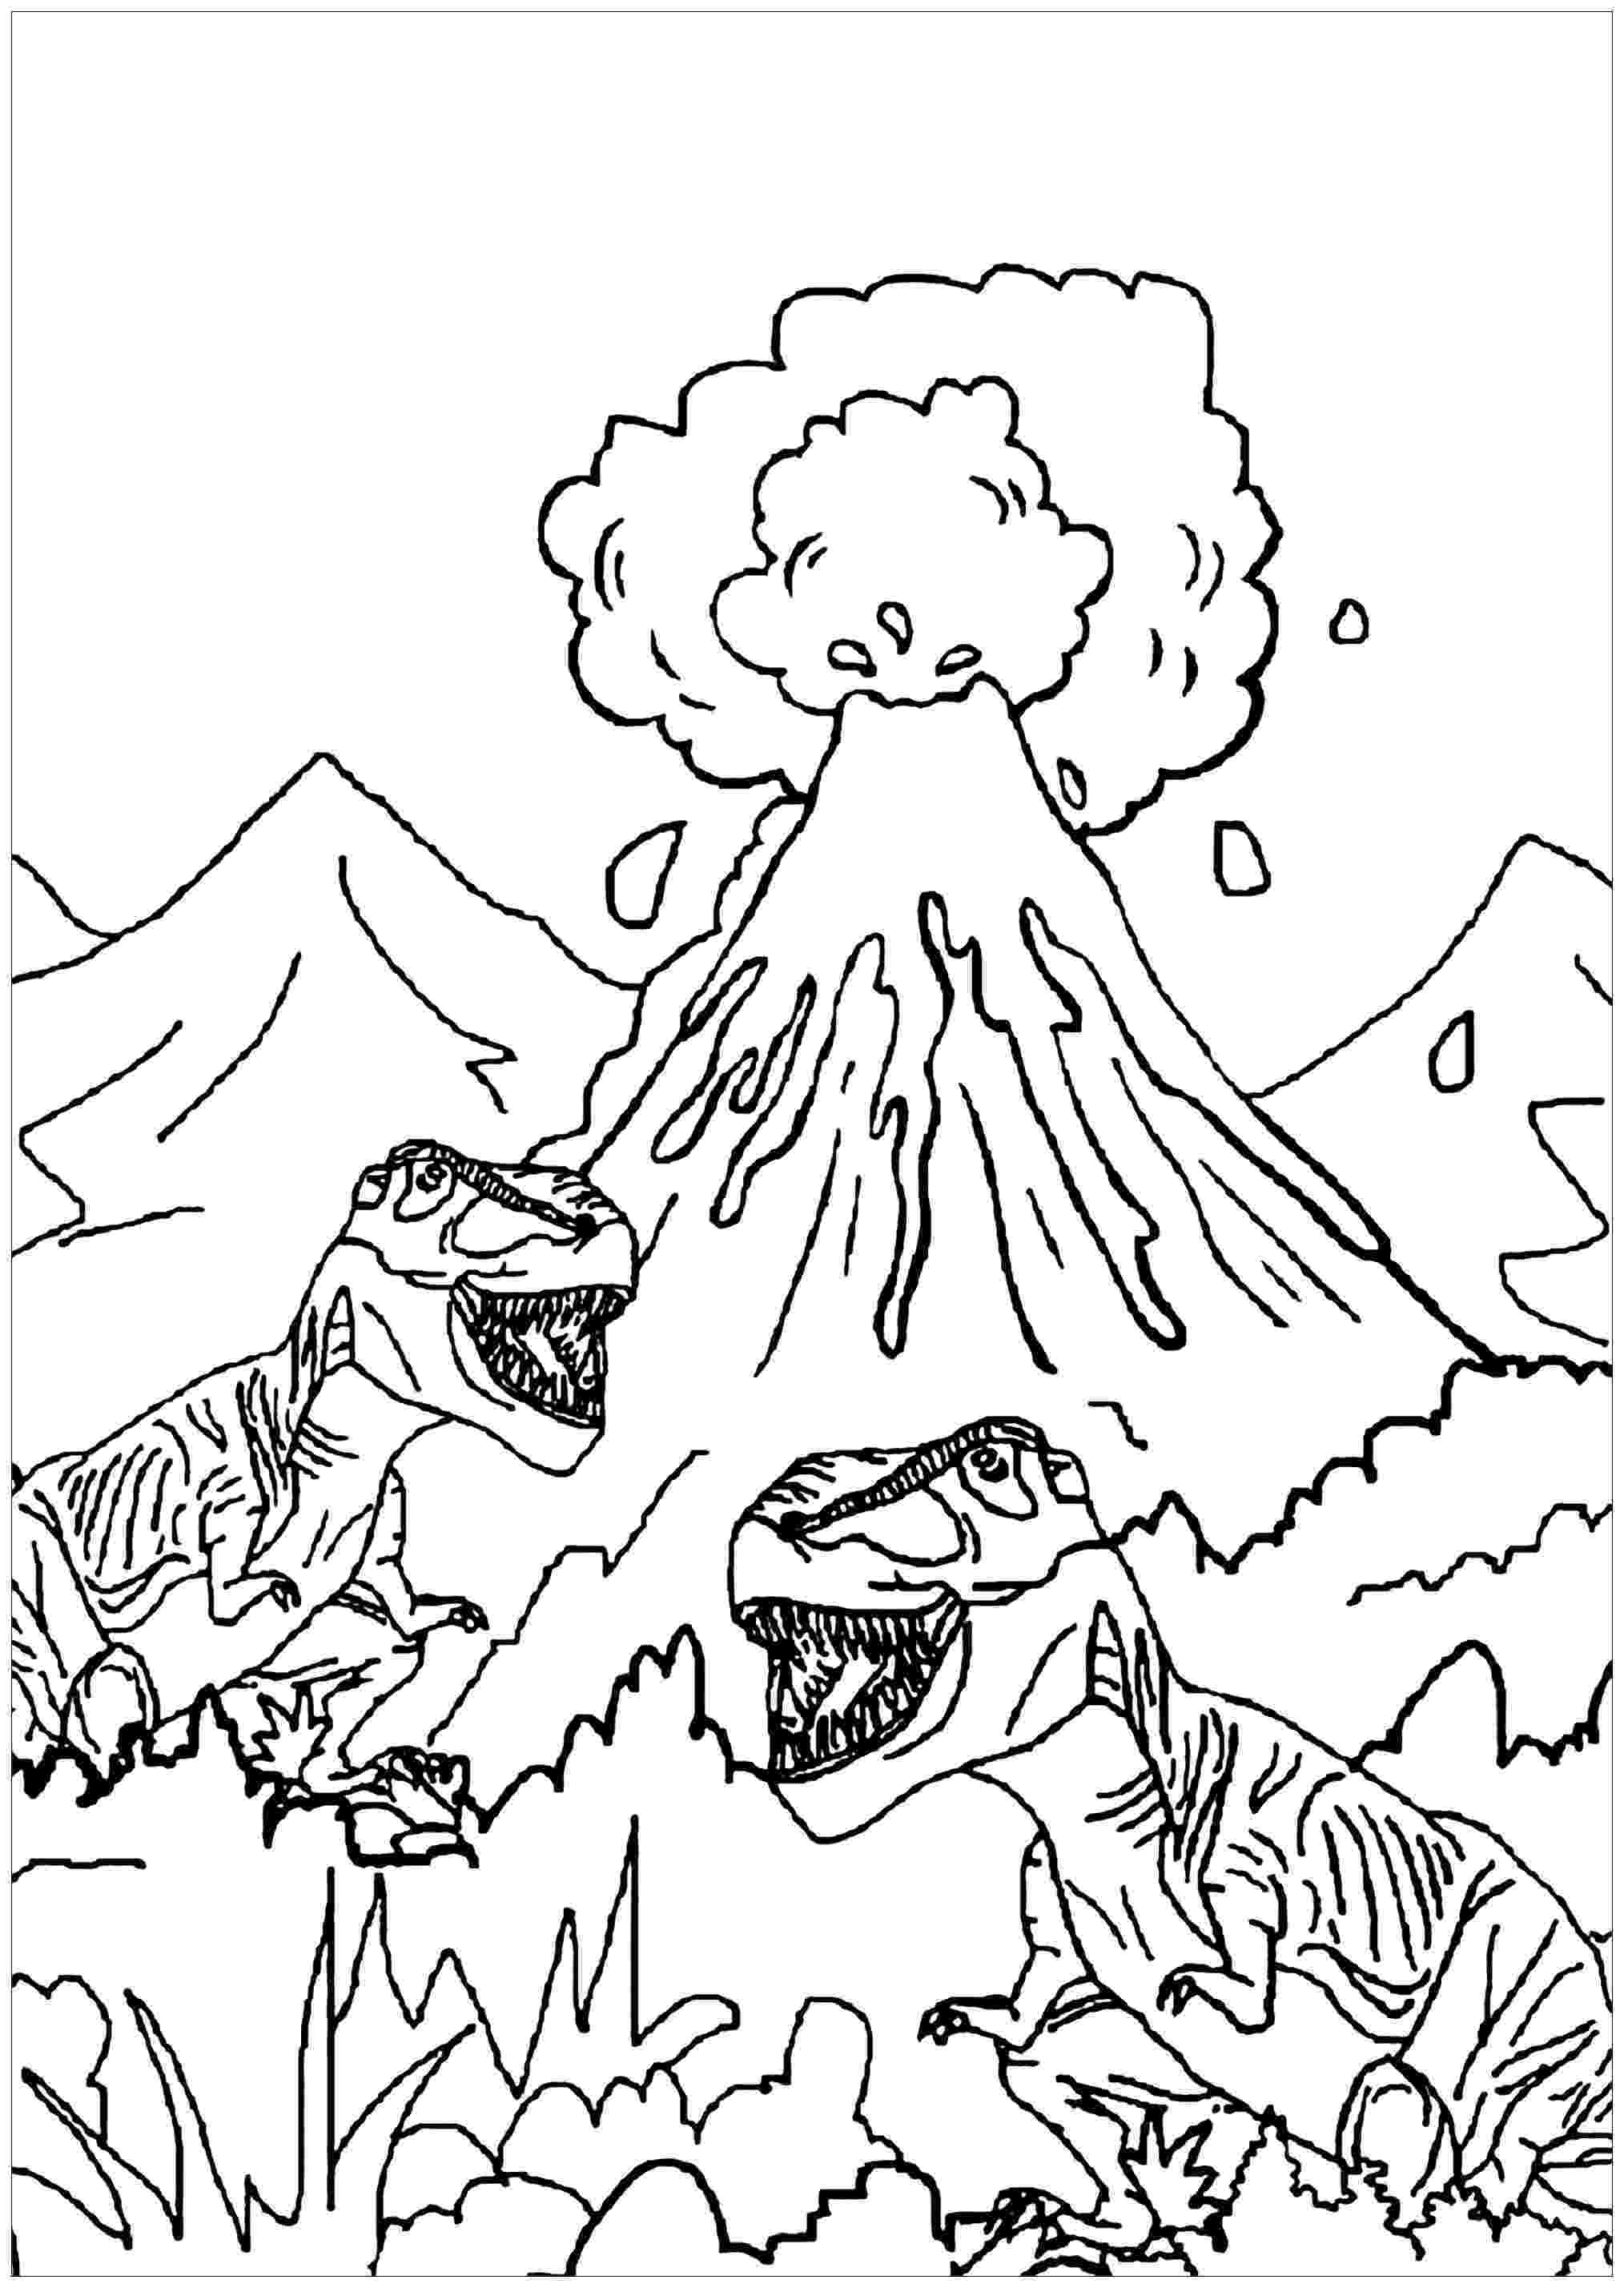 coloring pages of dinosaurs for preschoolers pin by mag on letter d preschool activities coloring dinosaurs pages preschoolers of coloring for